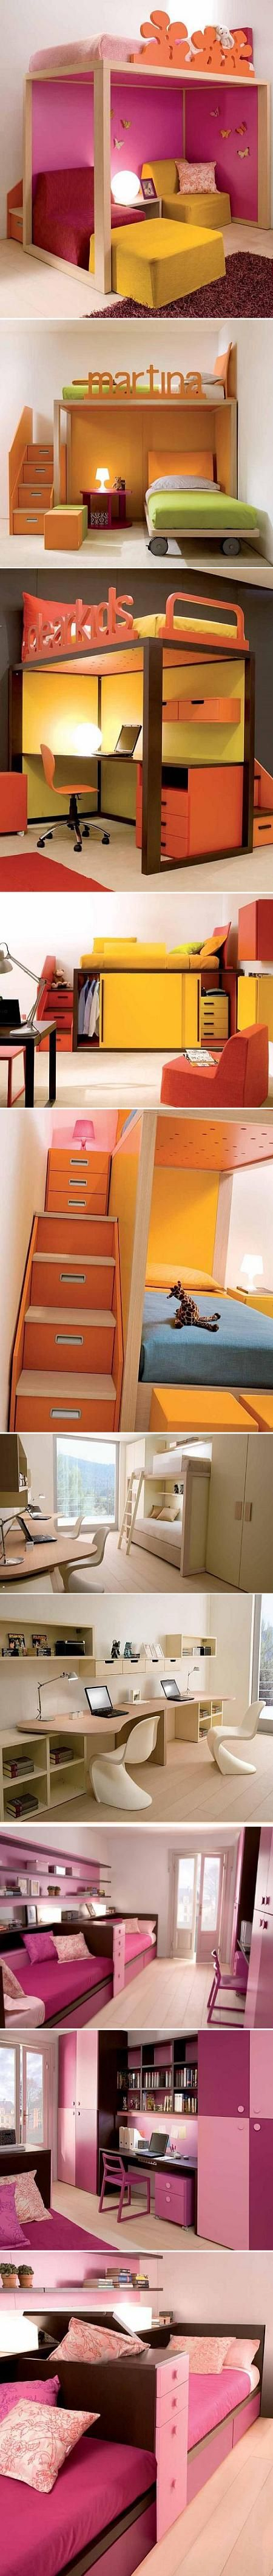 Great ideas to maximize a small space. Particularly liked the loft beds to create storage or usable space underneath.